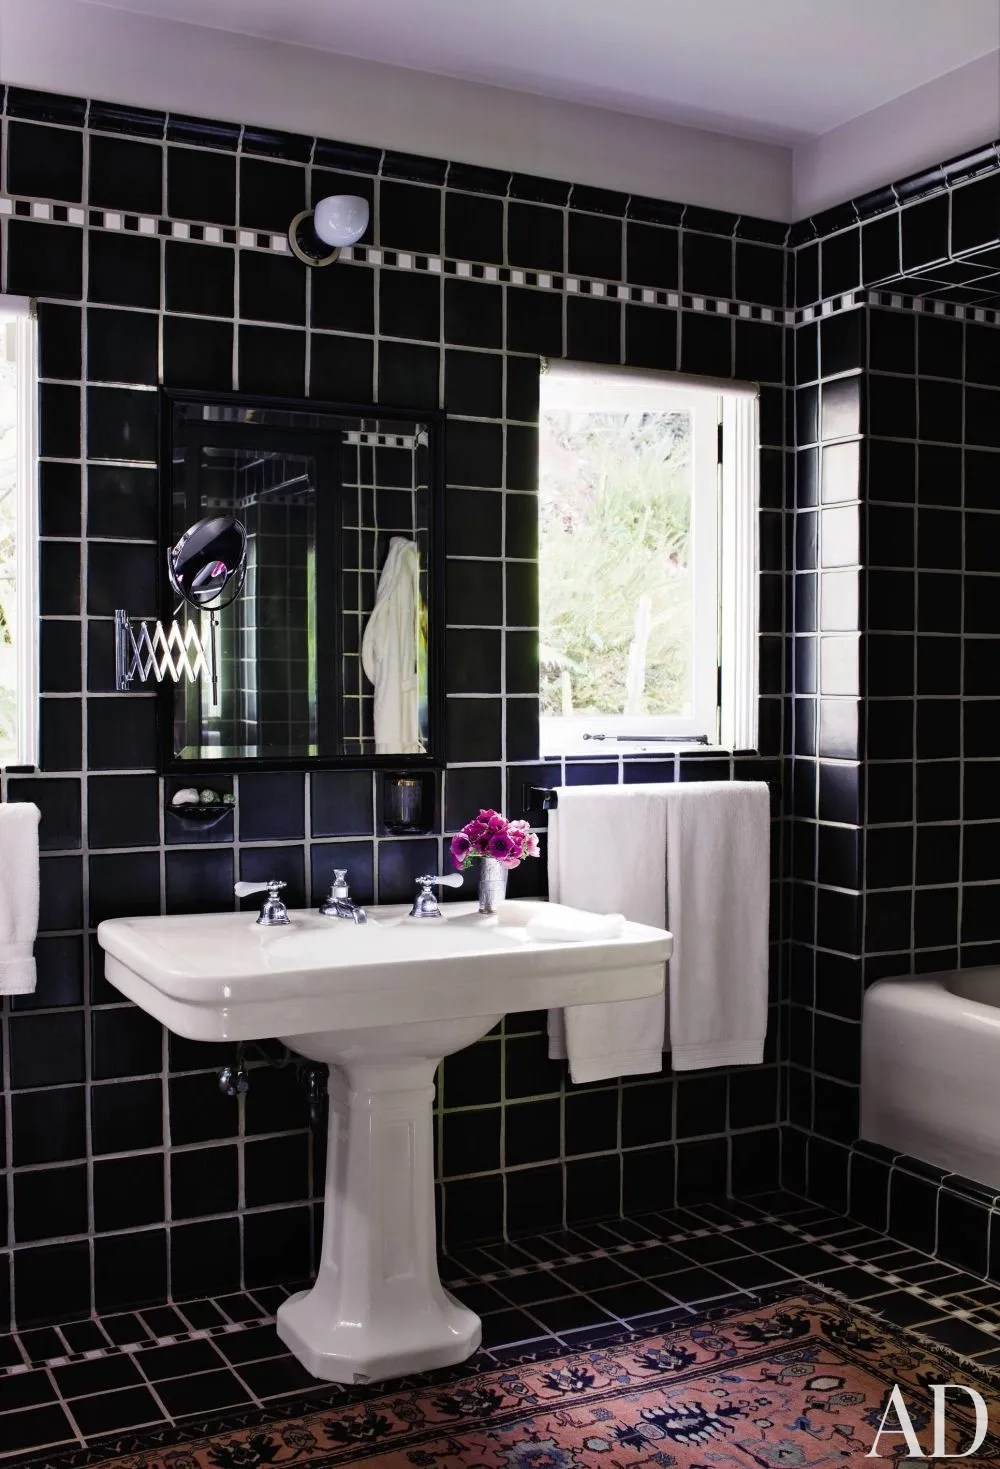 Bathroom Design Ideas That Will Make You Rethink Retro Tile Architectural Digest